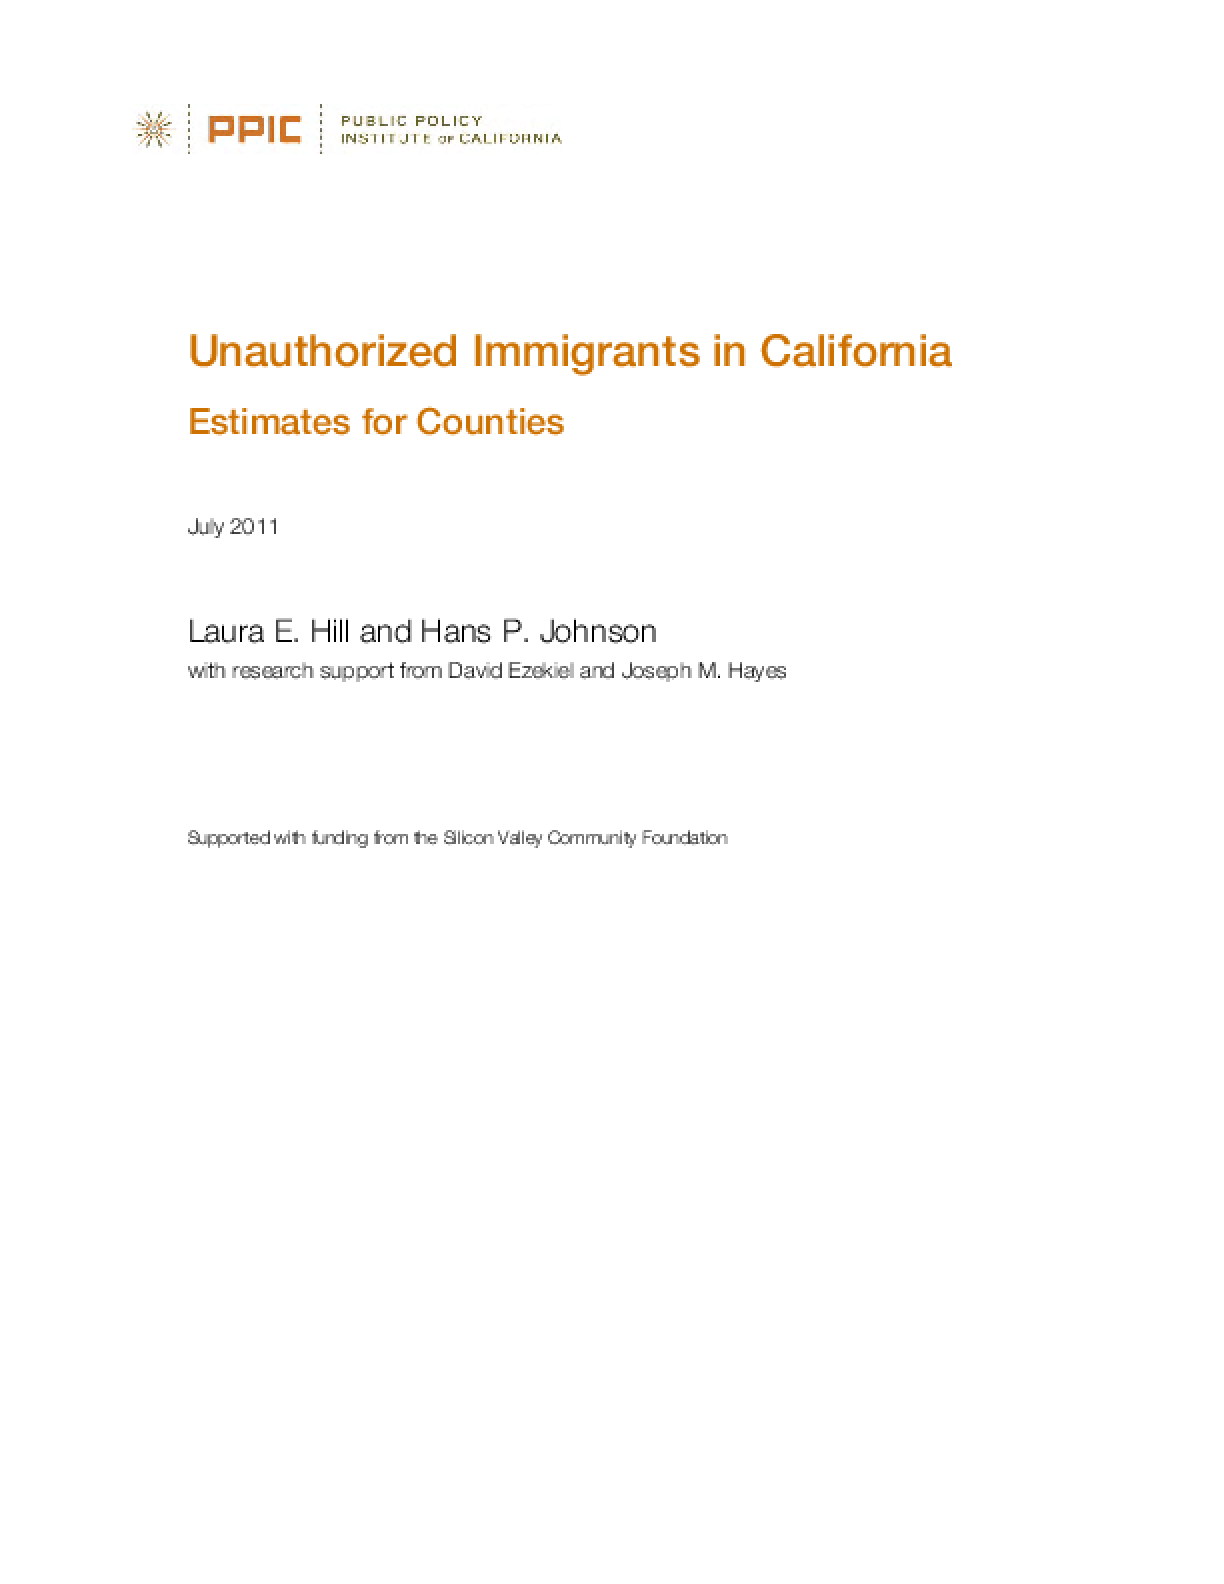 Unauthorized Immigrants in California: Estimates for Counties